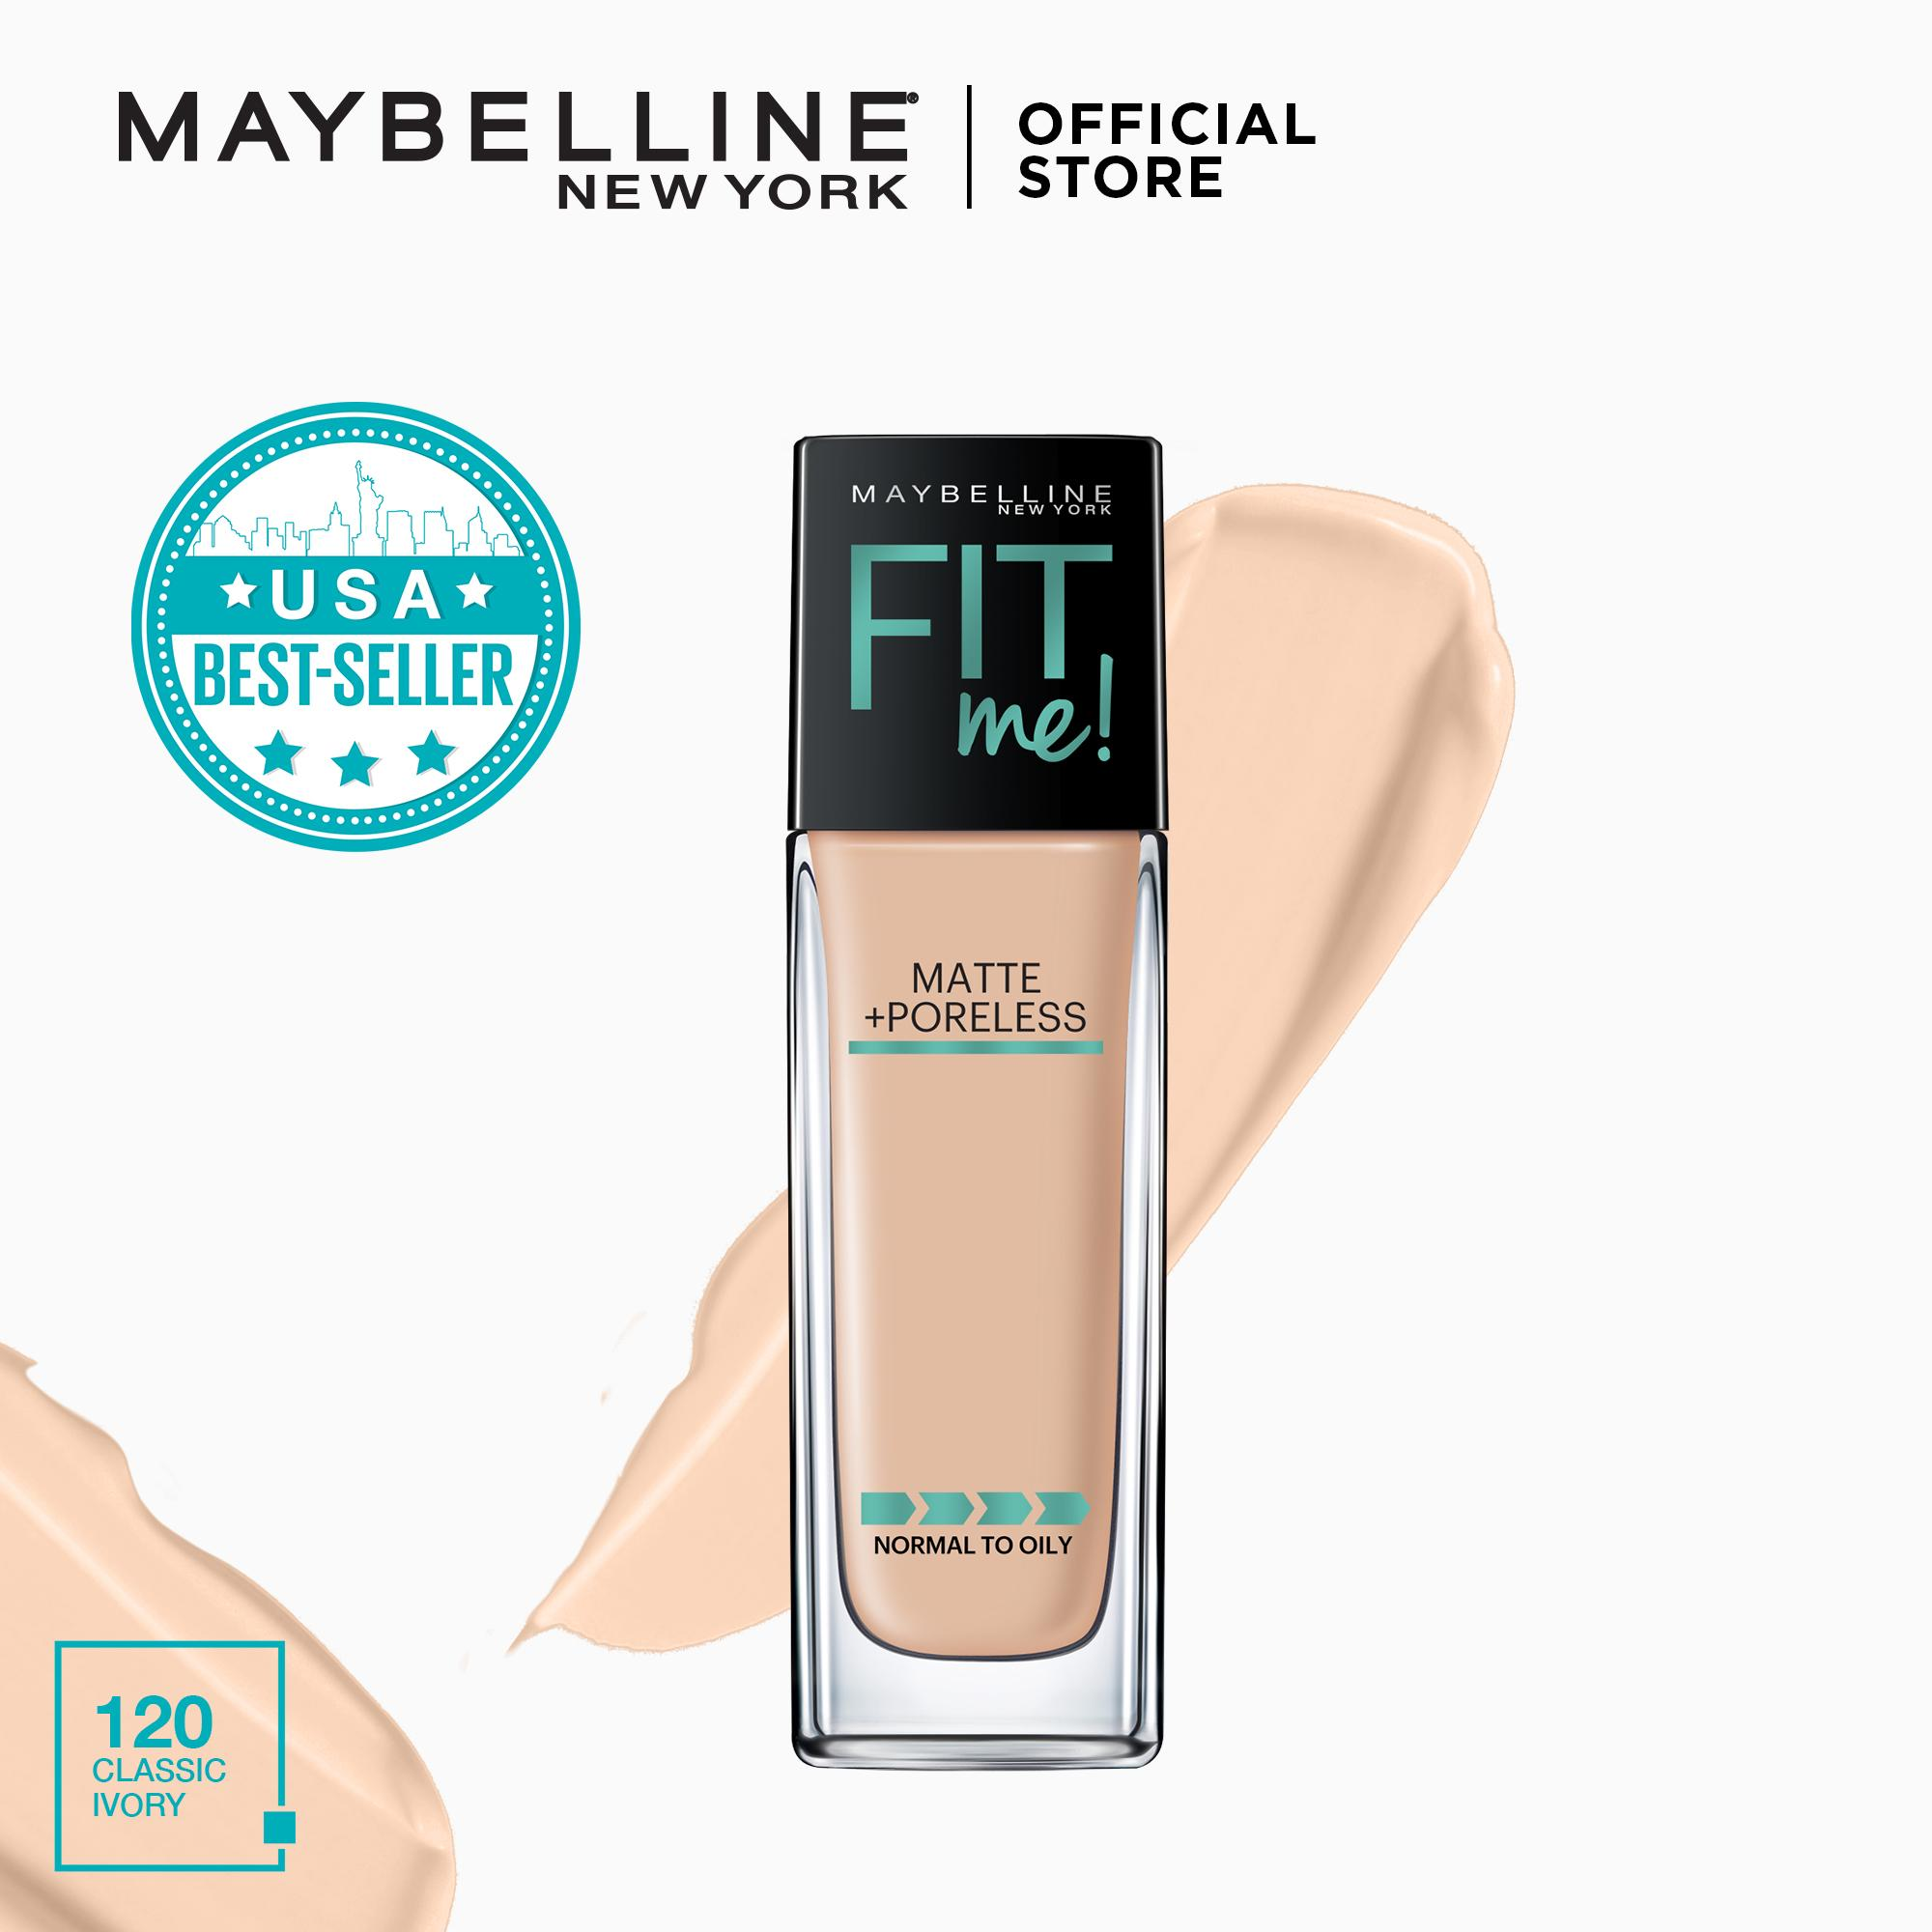 Maybelline Fit Me Matte + Poreless Liquid Foundation 30 mL Philippines